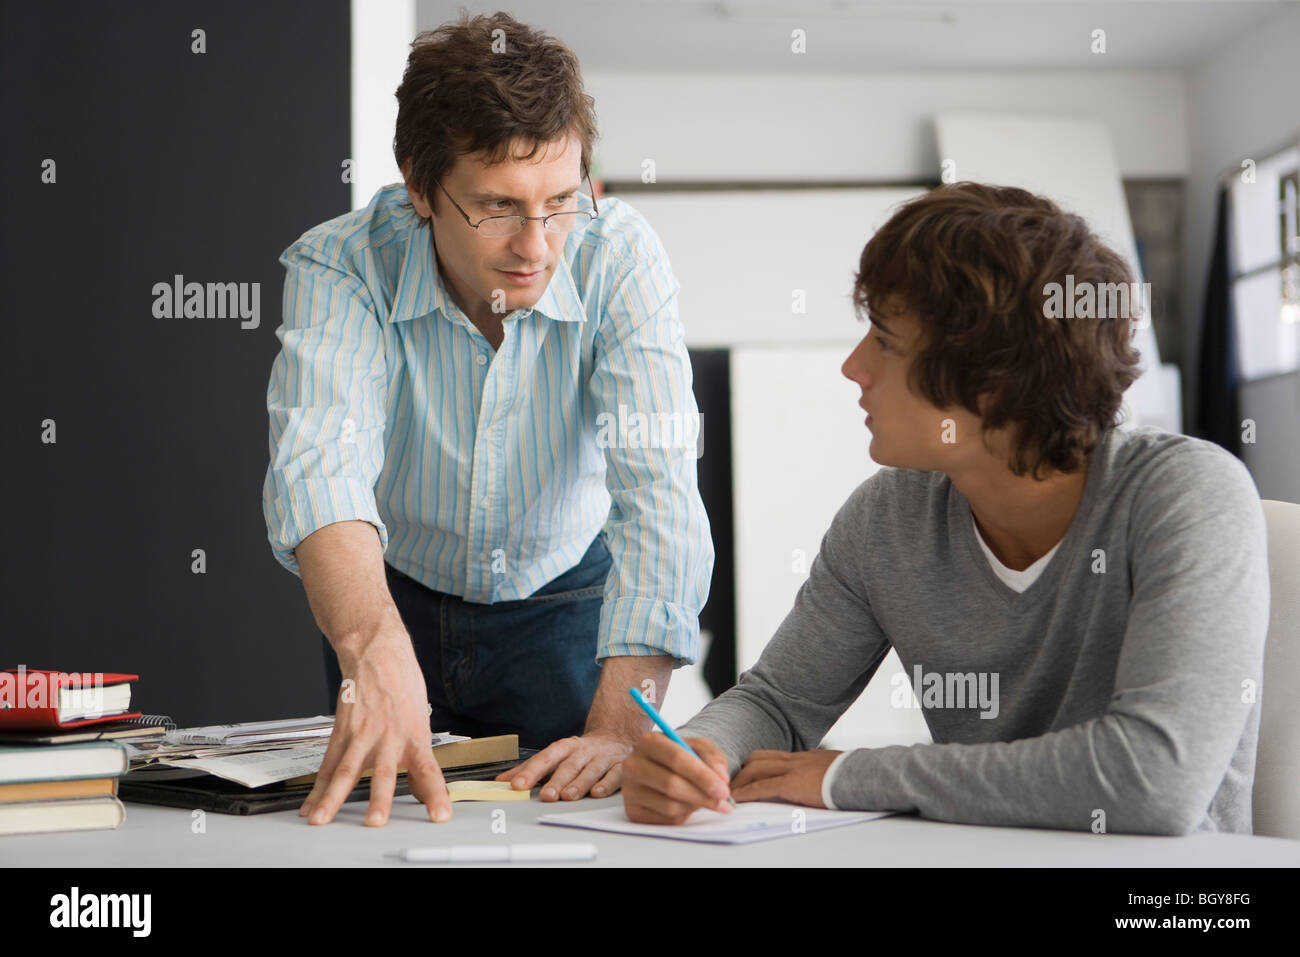 Teacher assisting college student - Stock Image